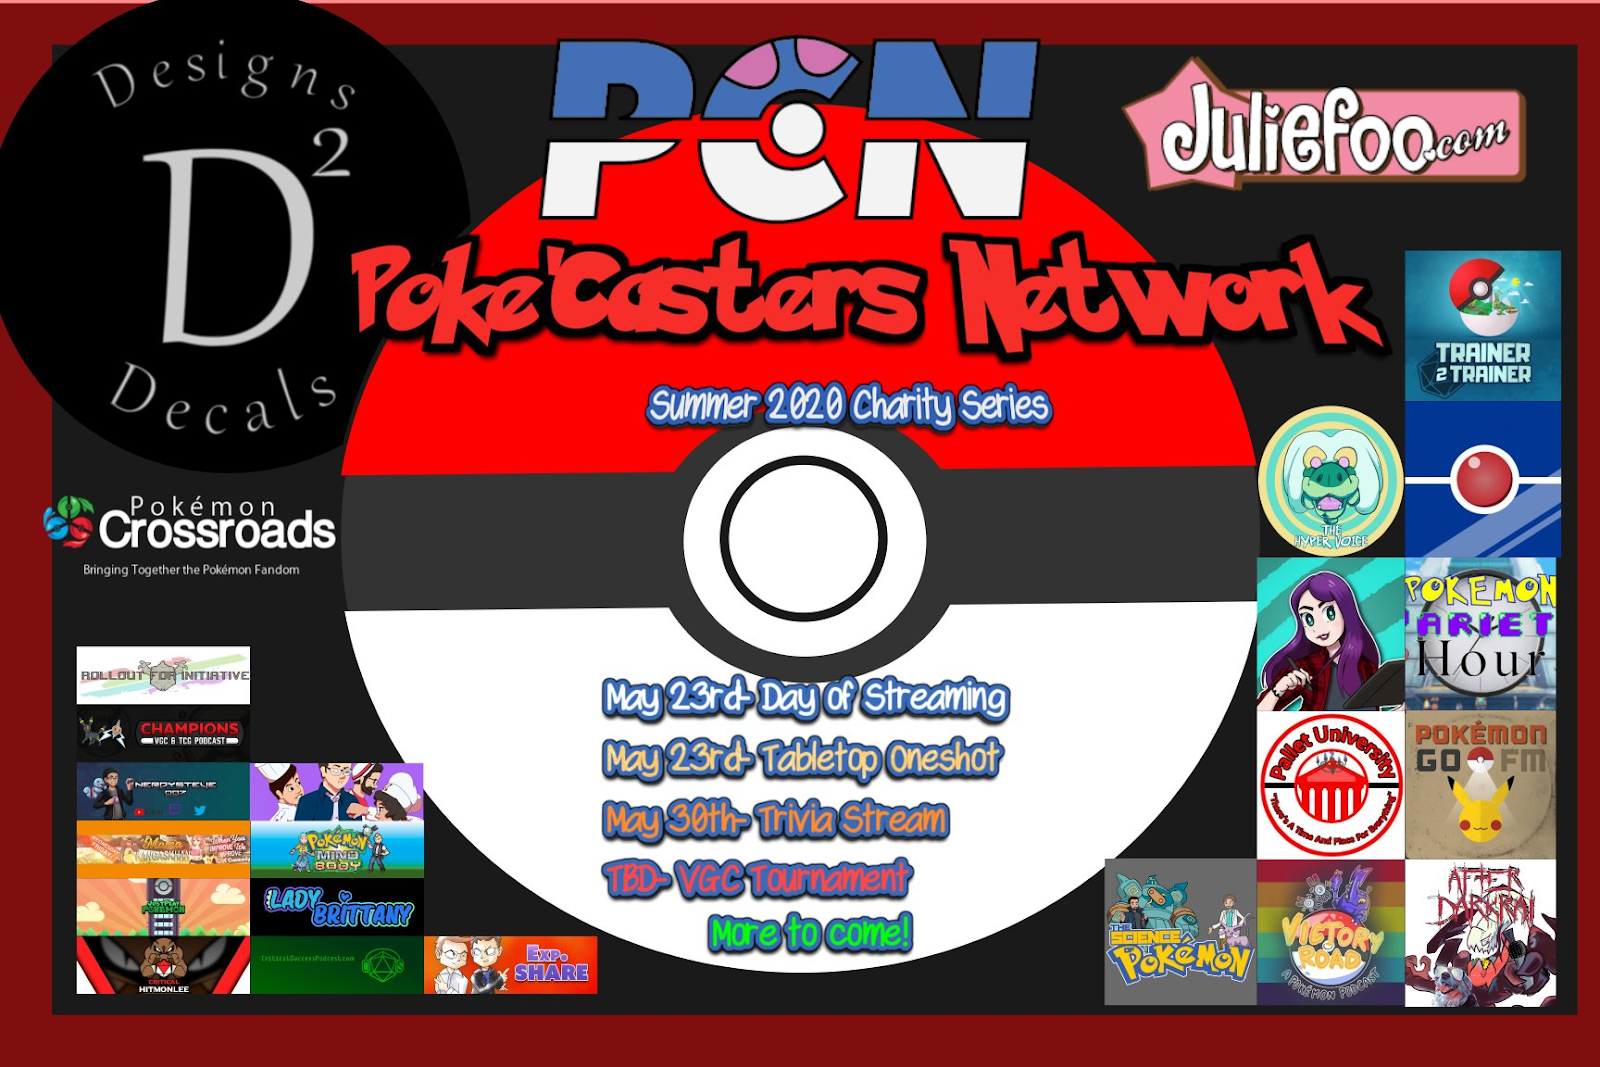 PokeCasters Network Charity